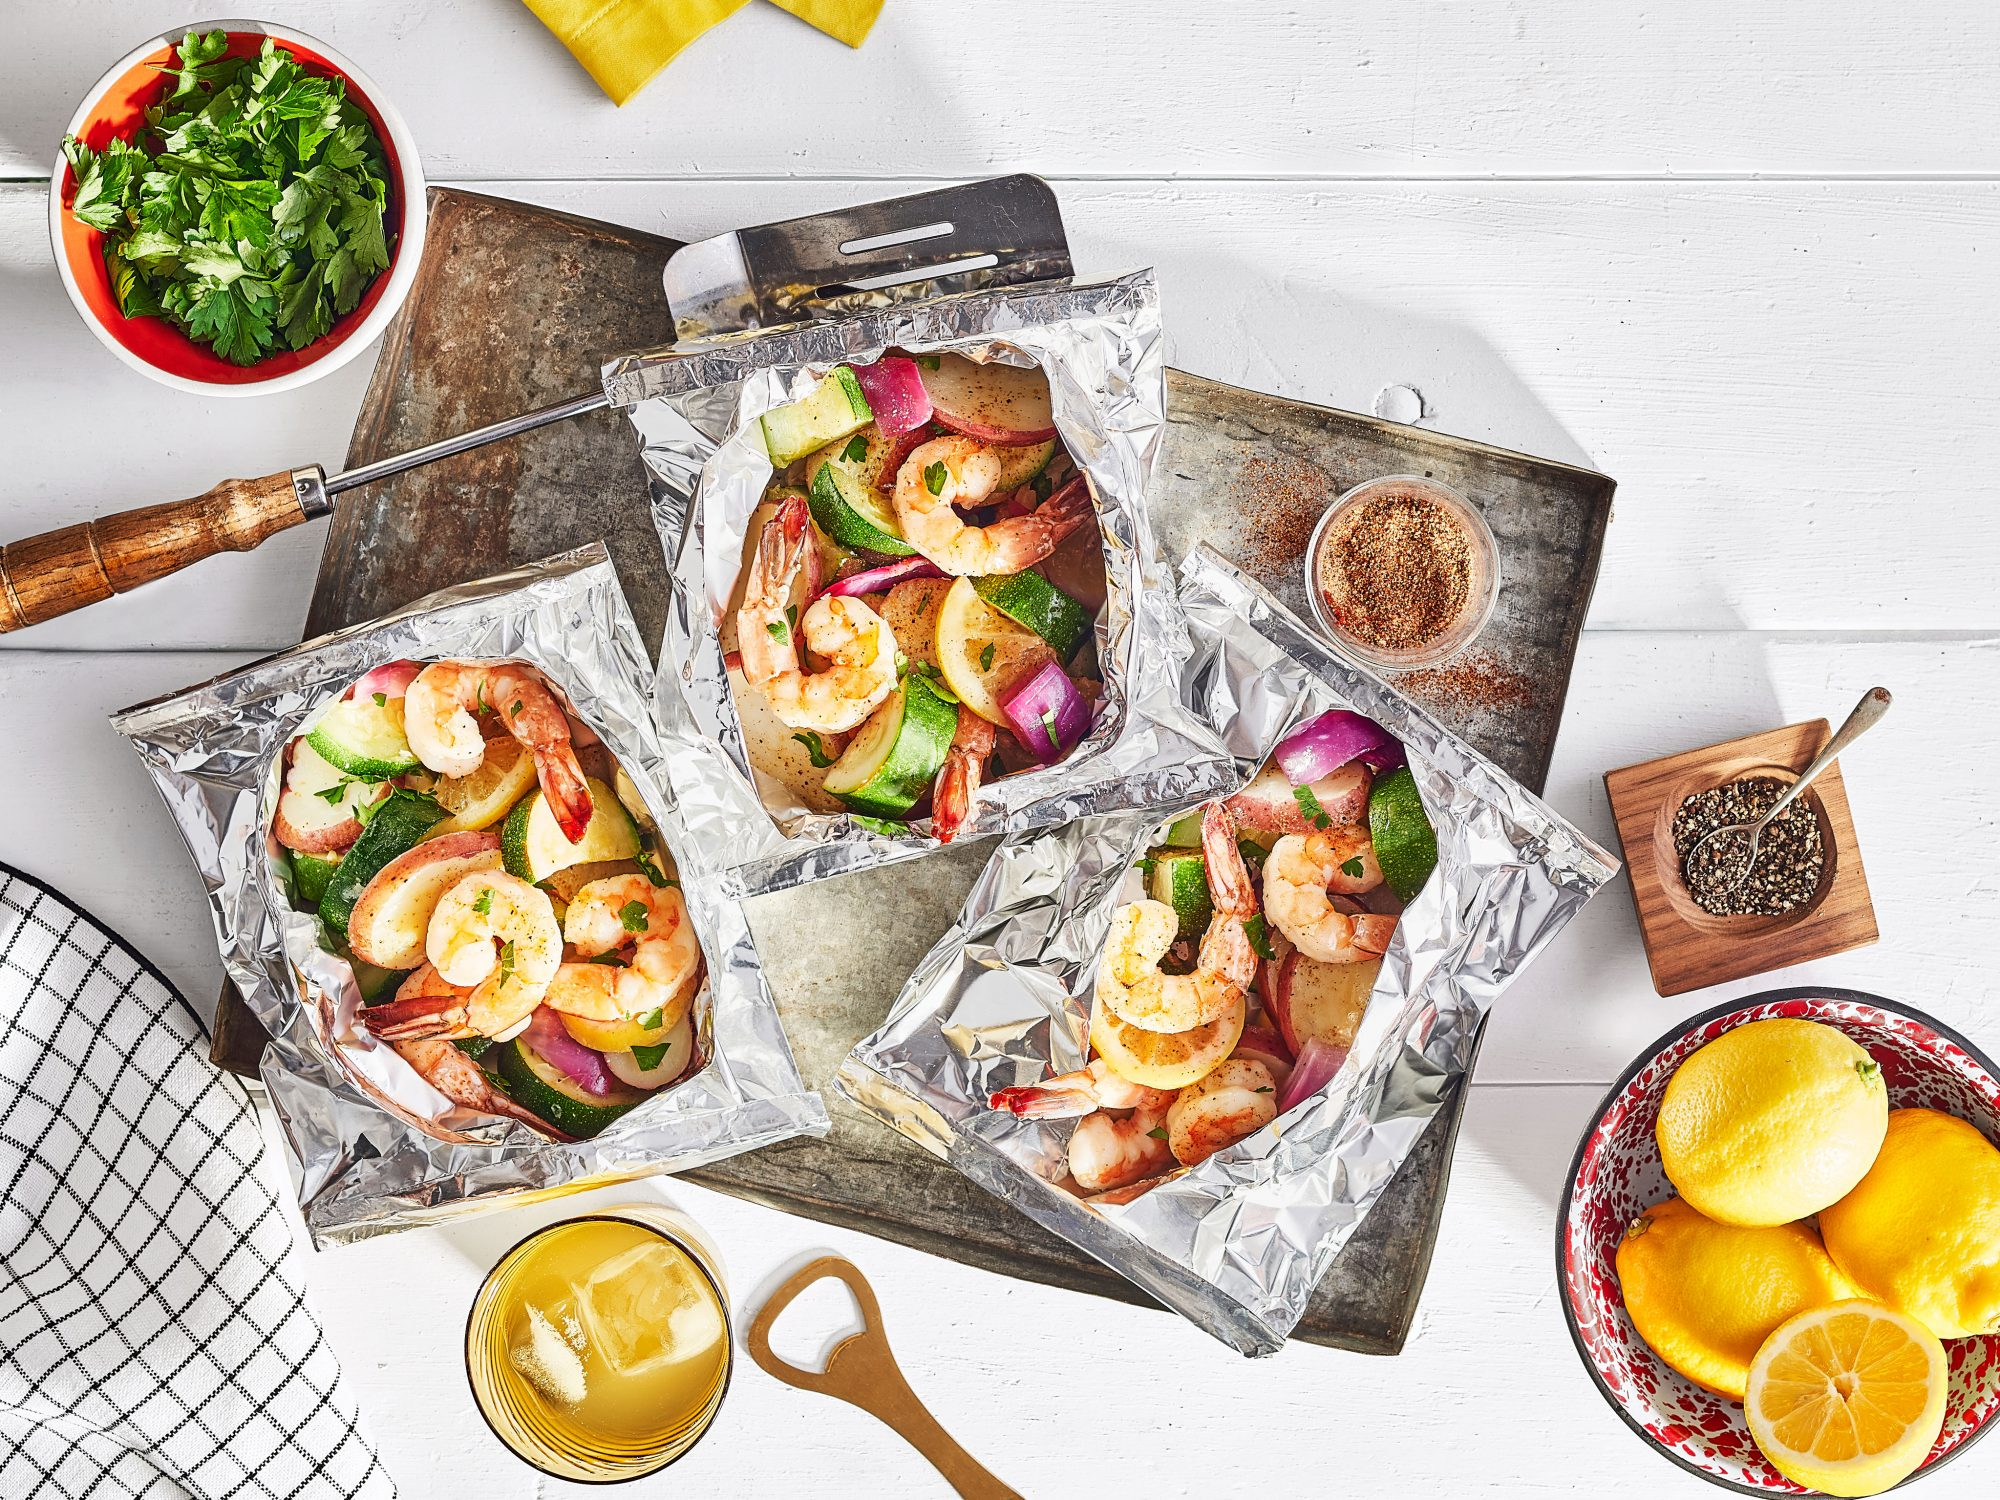 Cajun Shrimp Foil Packets with Red Potatoes and Zucchini